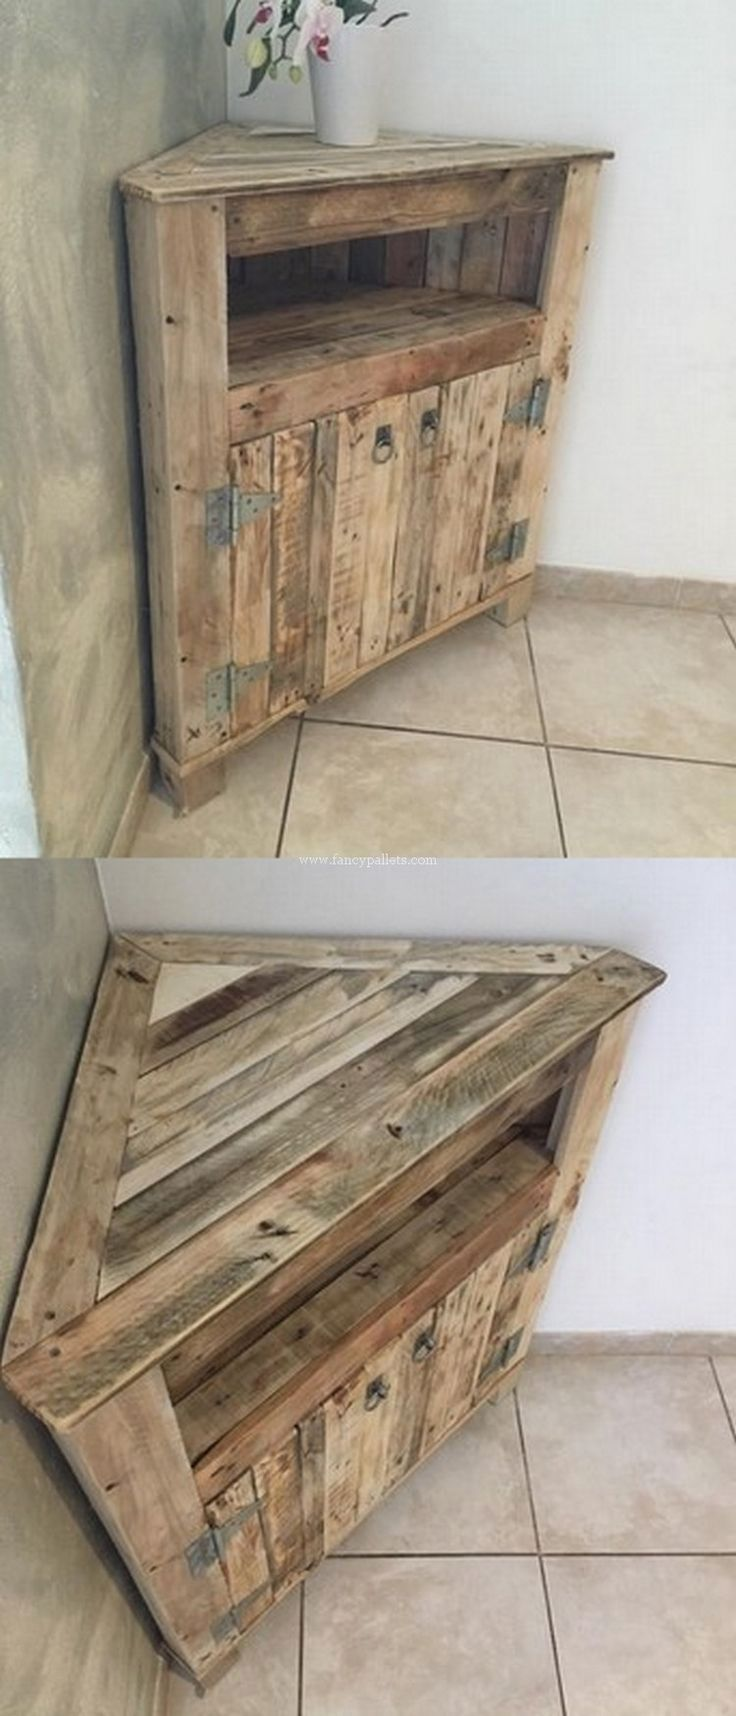 Farmhouse Kitchen Decor In 2020 Diy Palettenmobel Diy Paletten Holzbearbeitungs Projekte